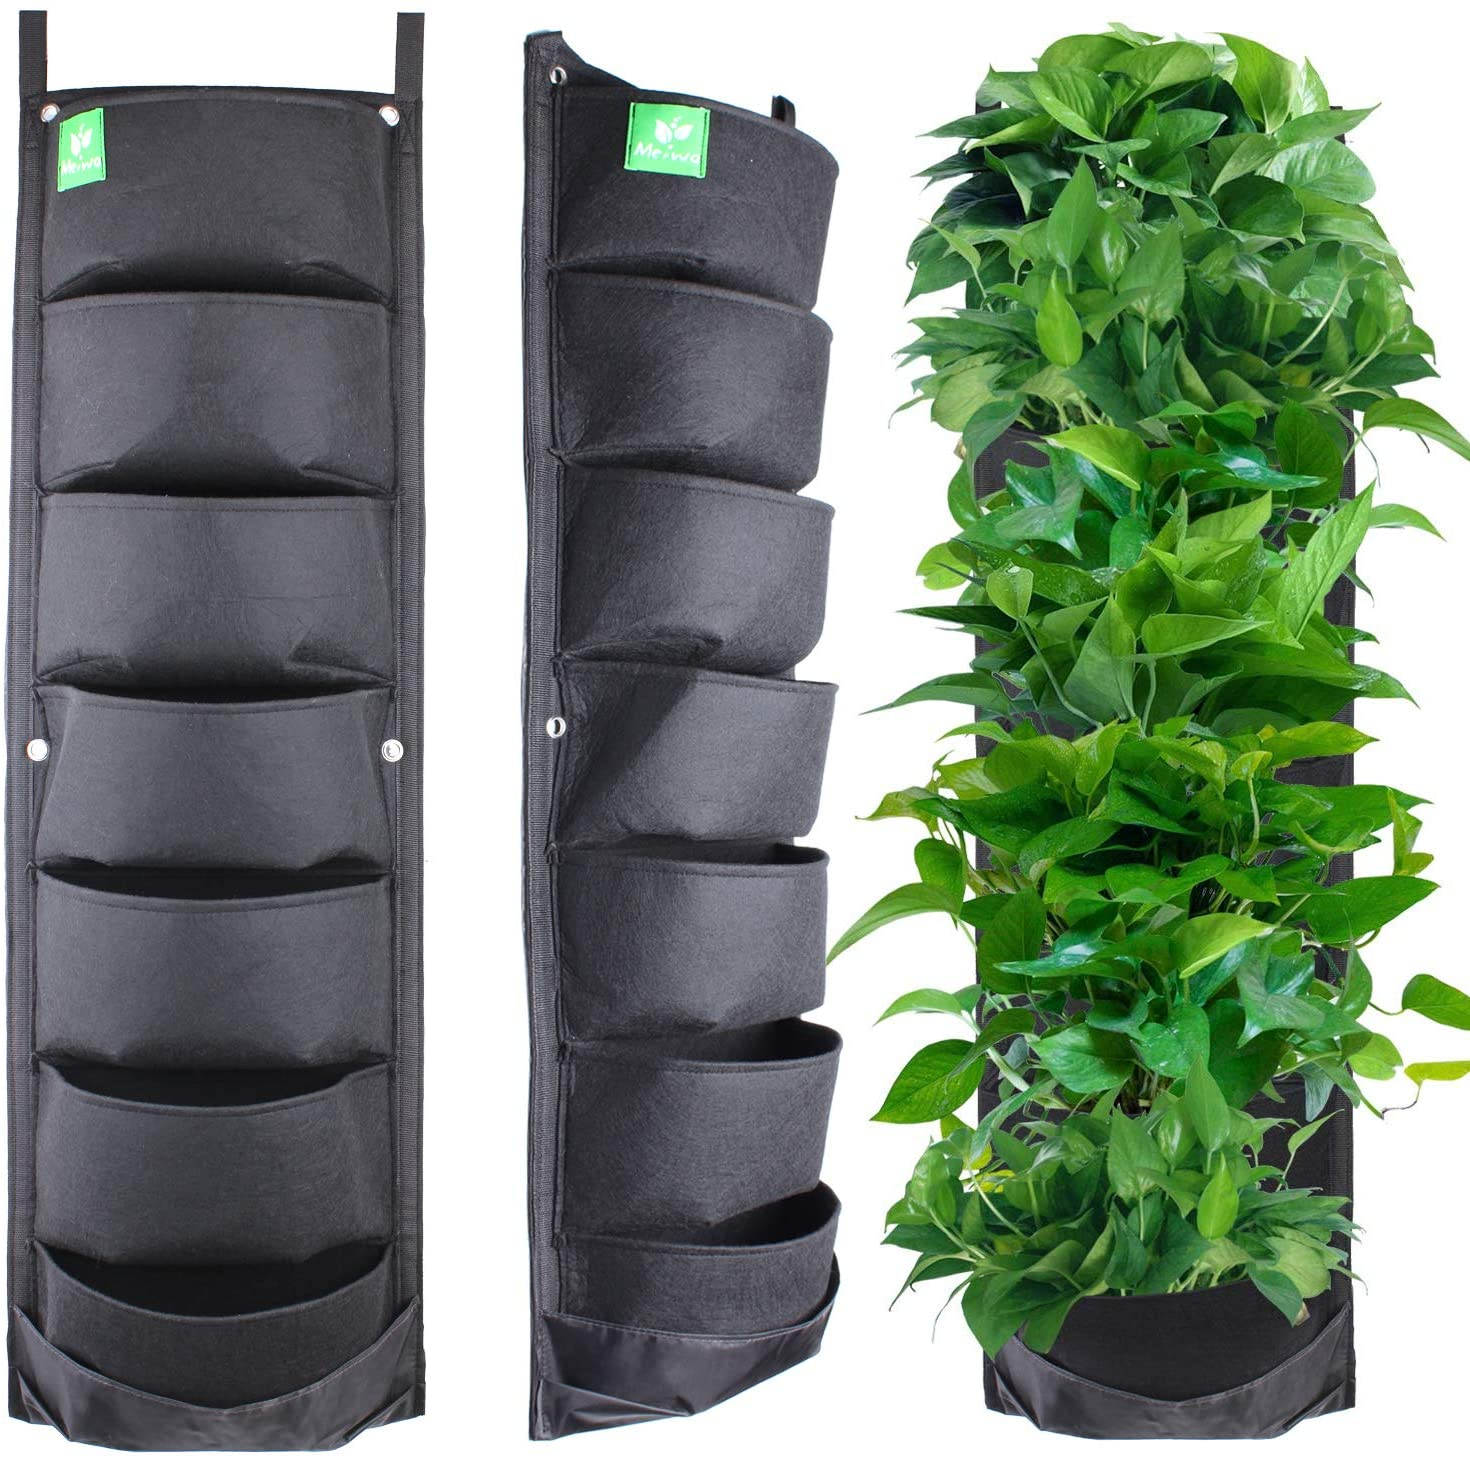 Hanging Vertical Garden Wall Planter